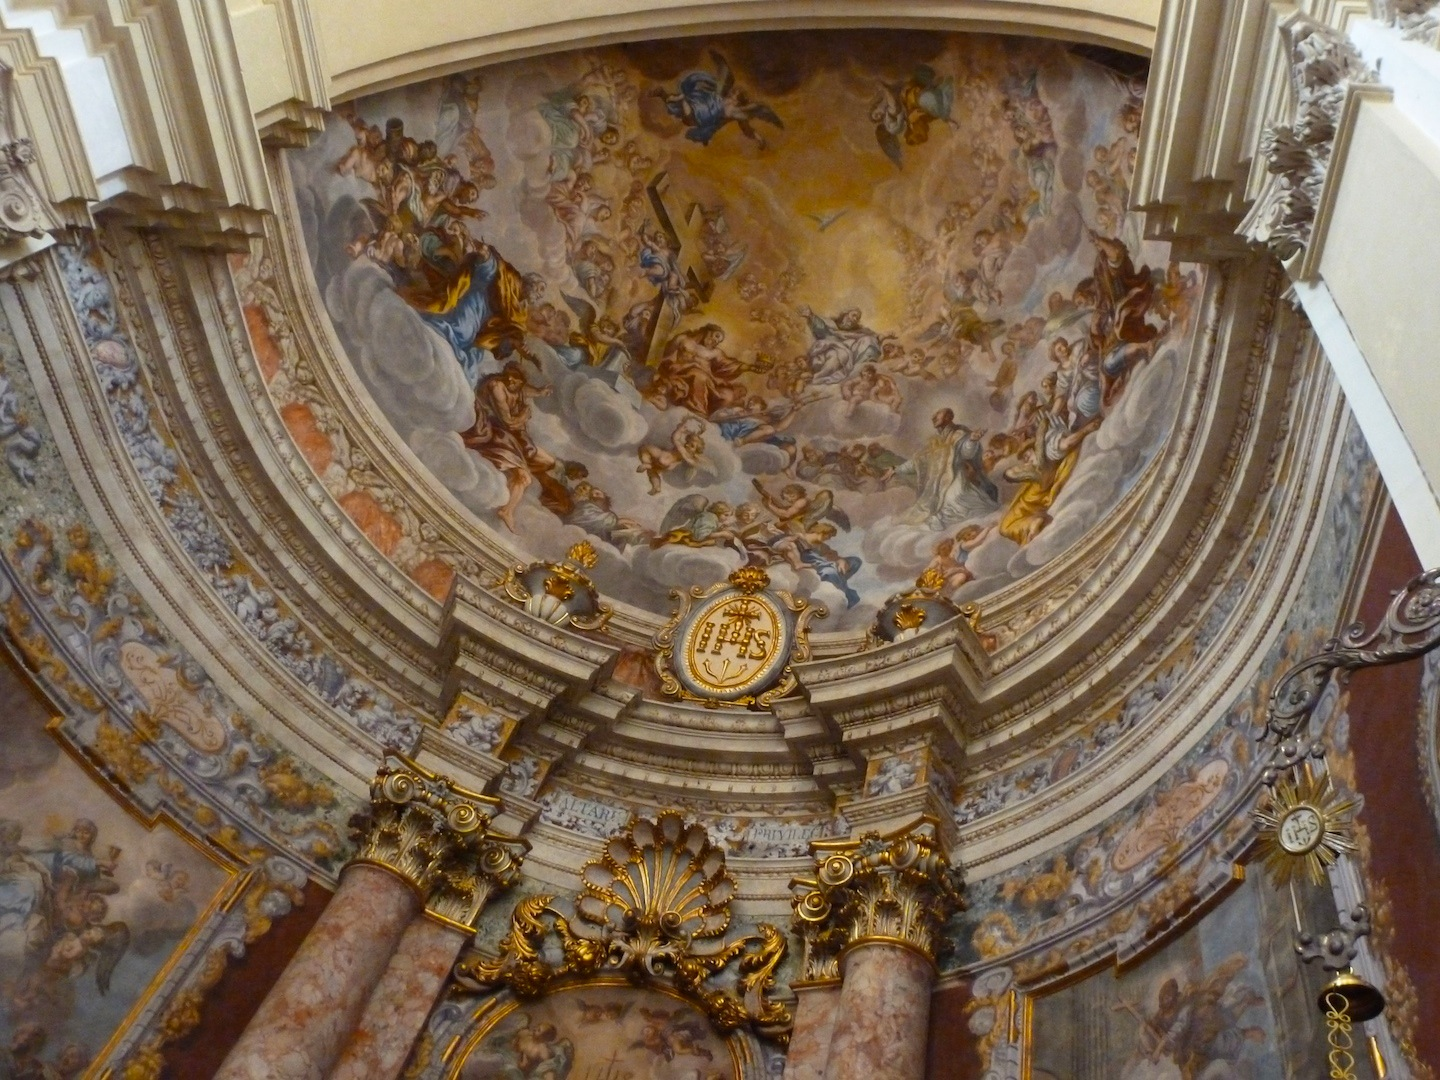 Looking up in St. Ignatius of Loyola, a Jesuit church.